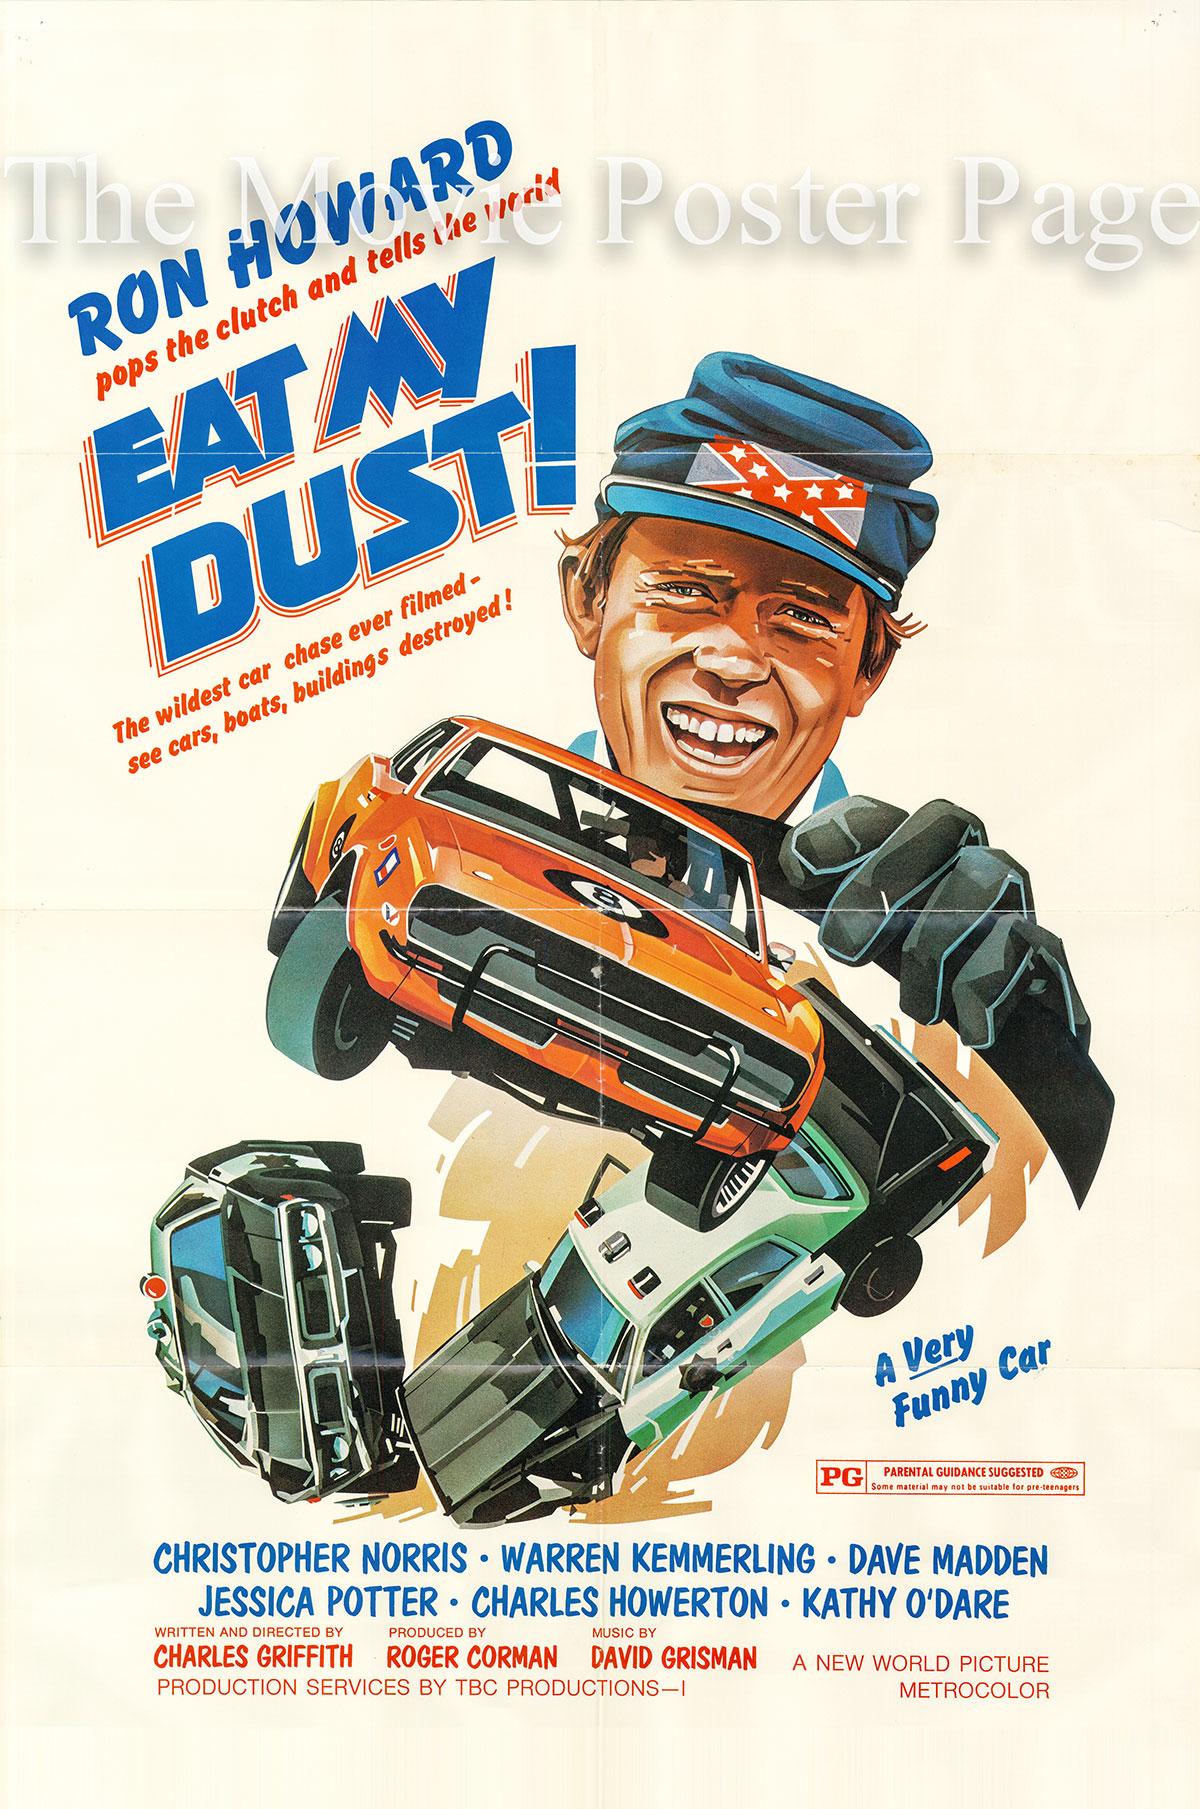 Pictured is a US one-sheet promotional poster for the 1976 Charles B.  Griffith film Eat My Dust starring Ron Howard.